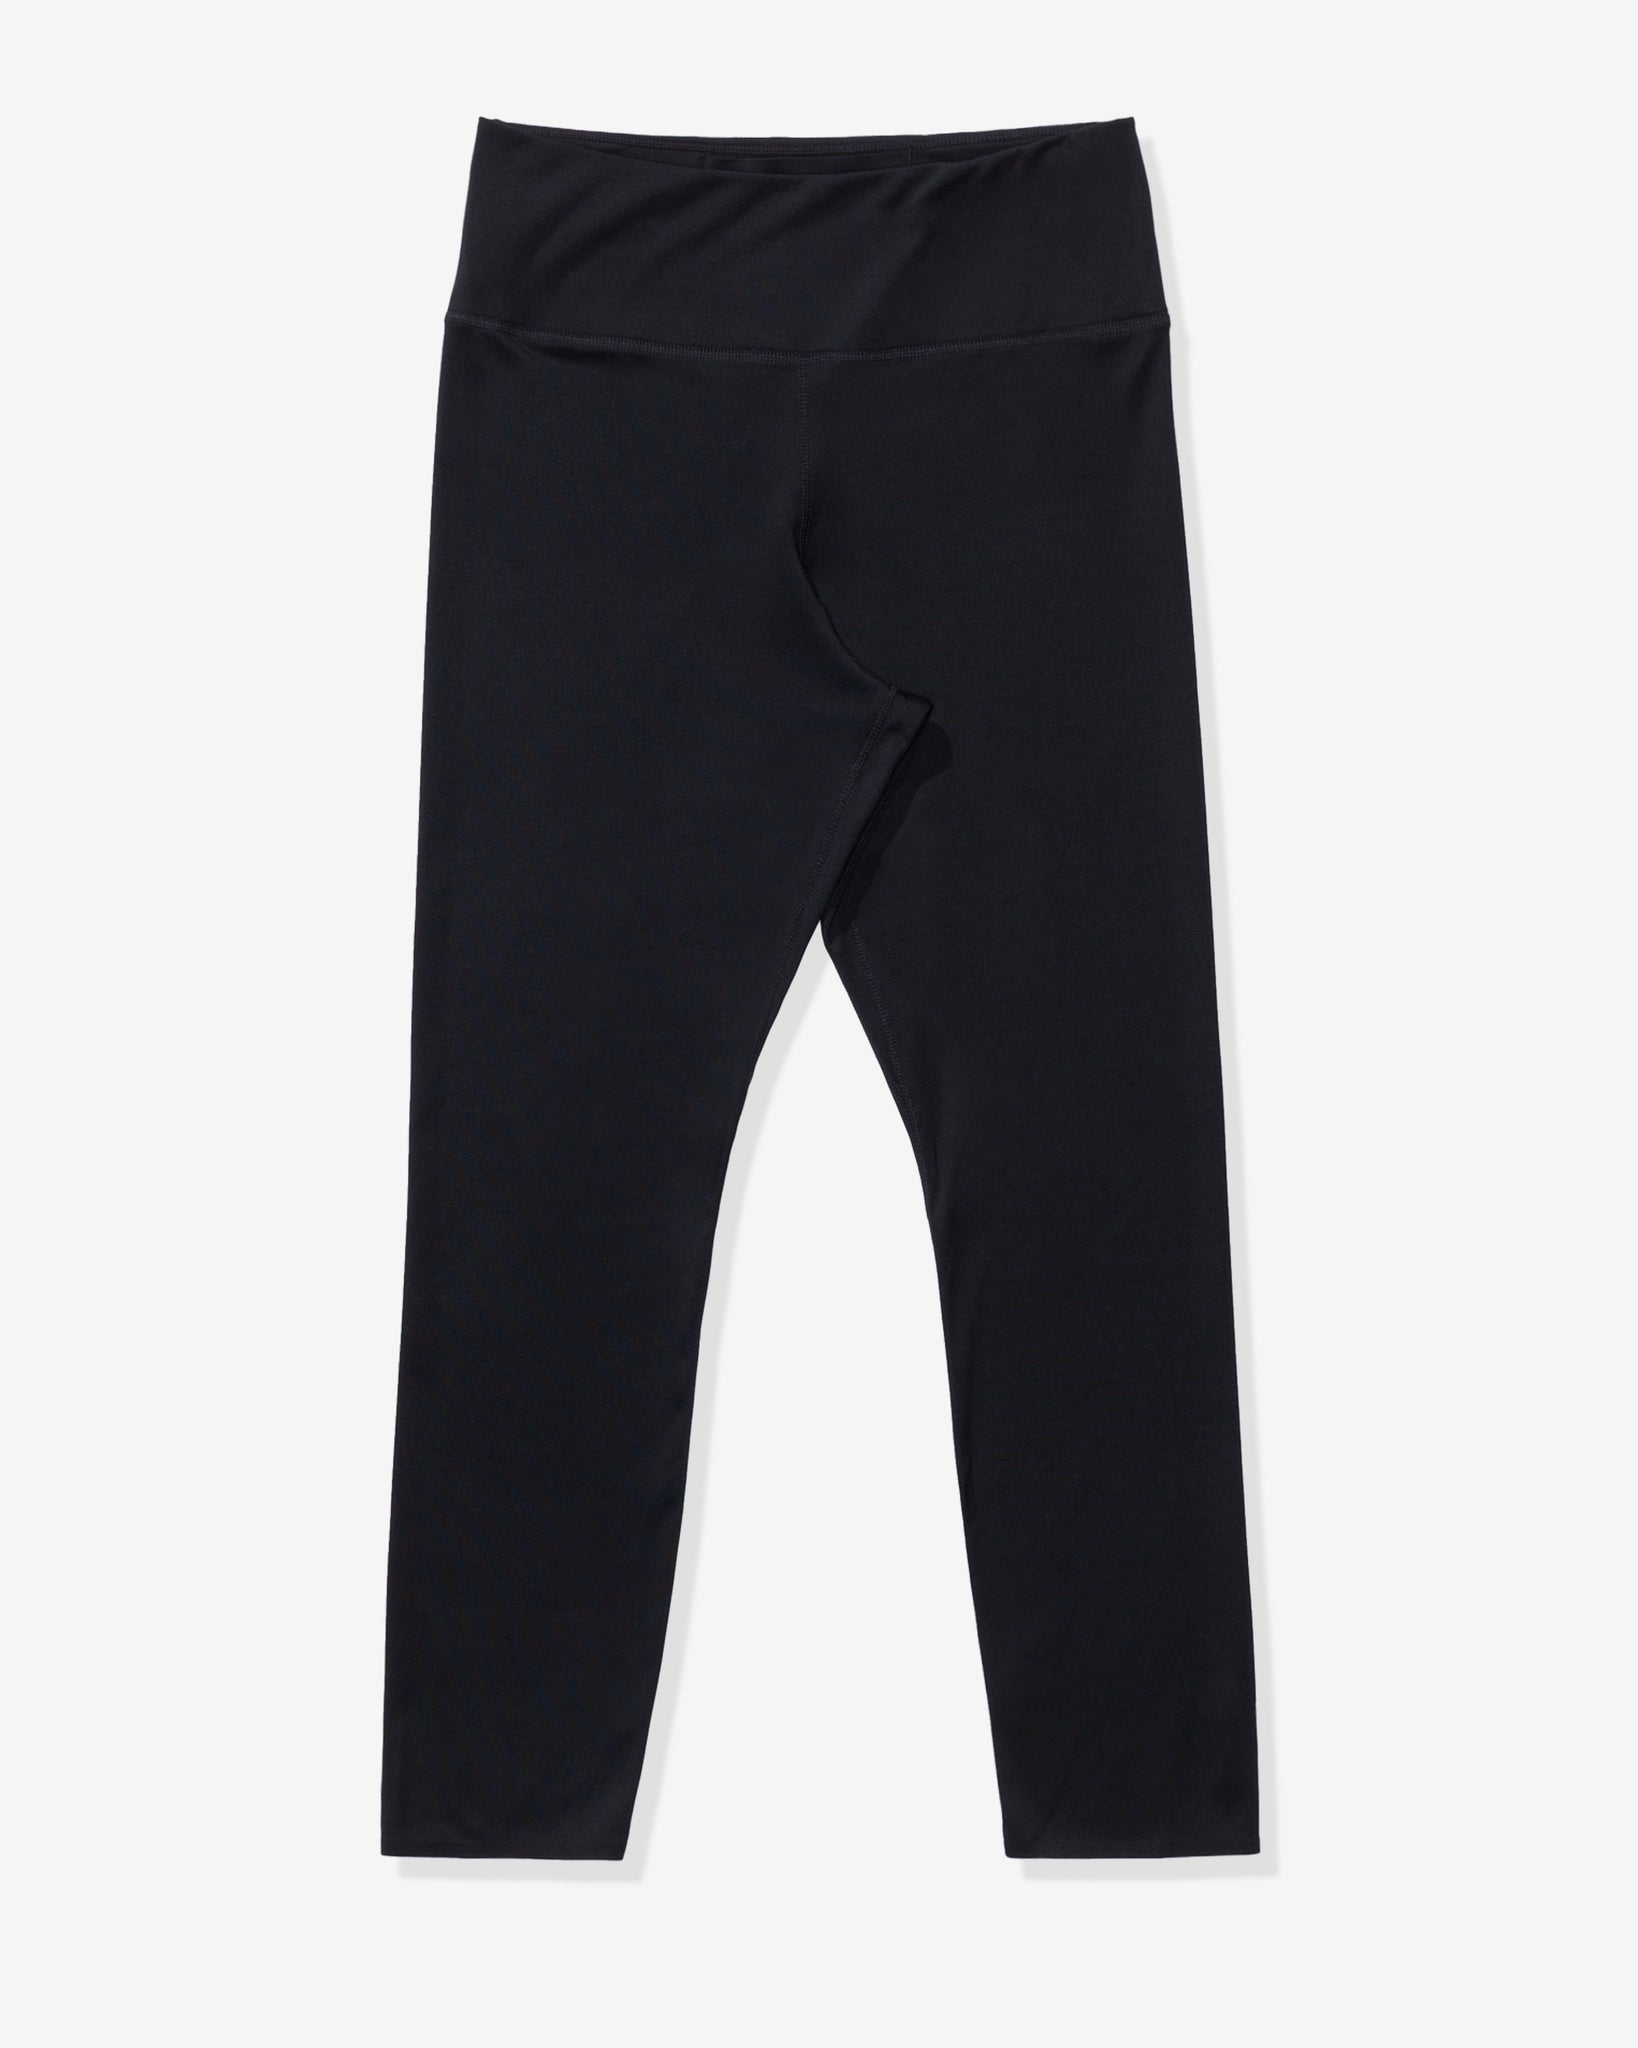 WOMEN'S ONE LUX CROPS - BLACK/CLEAR